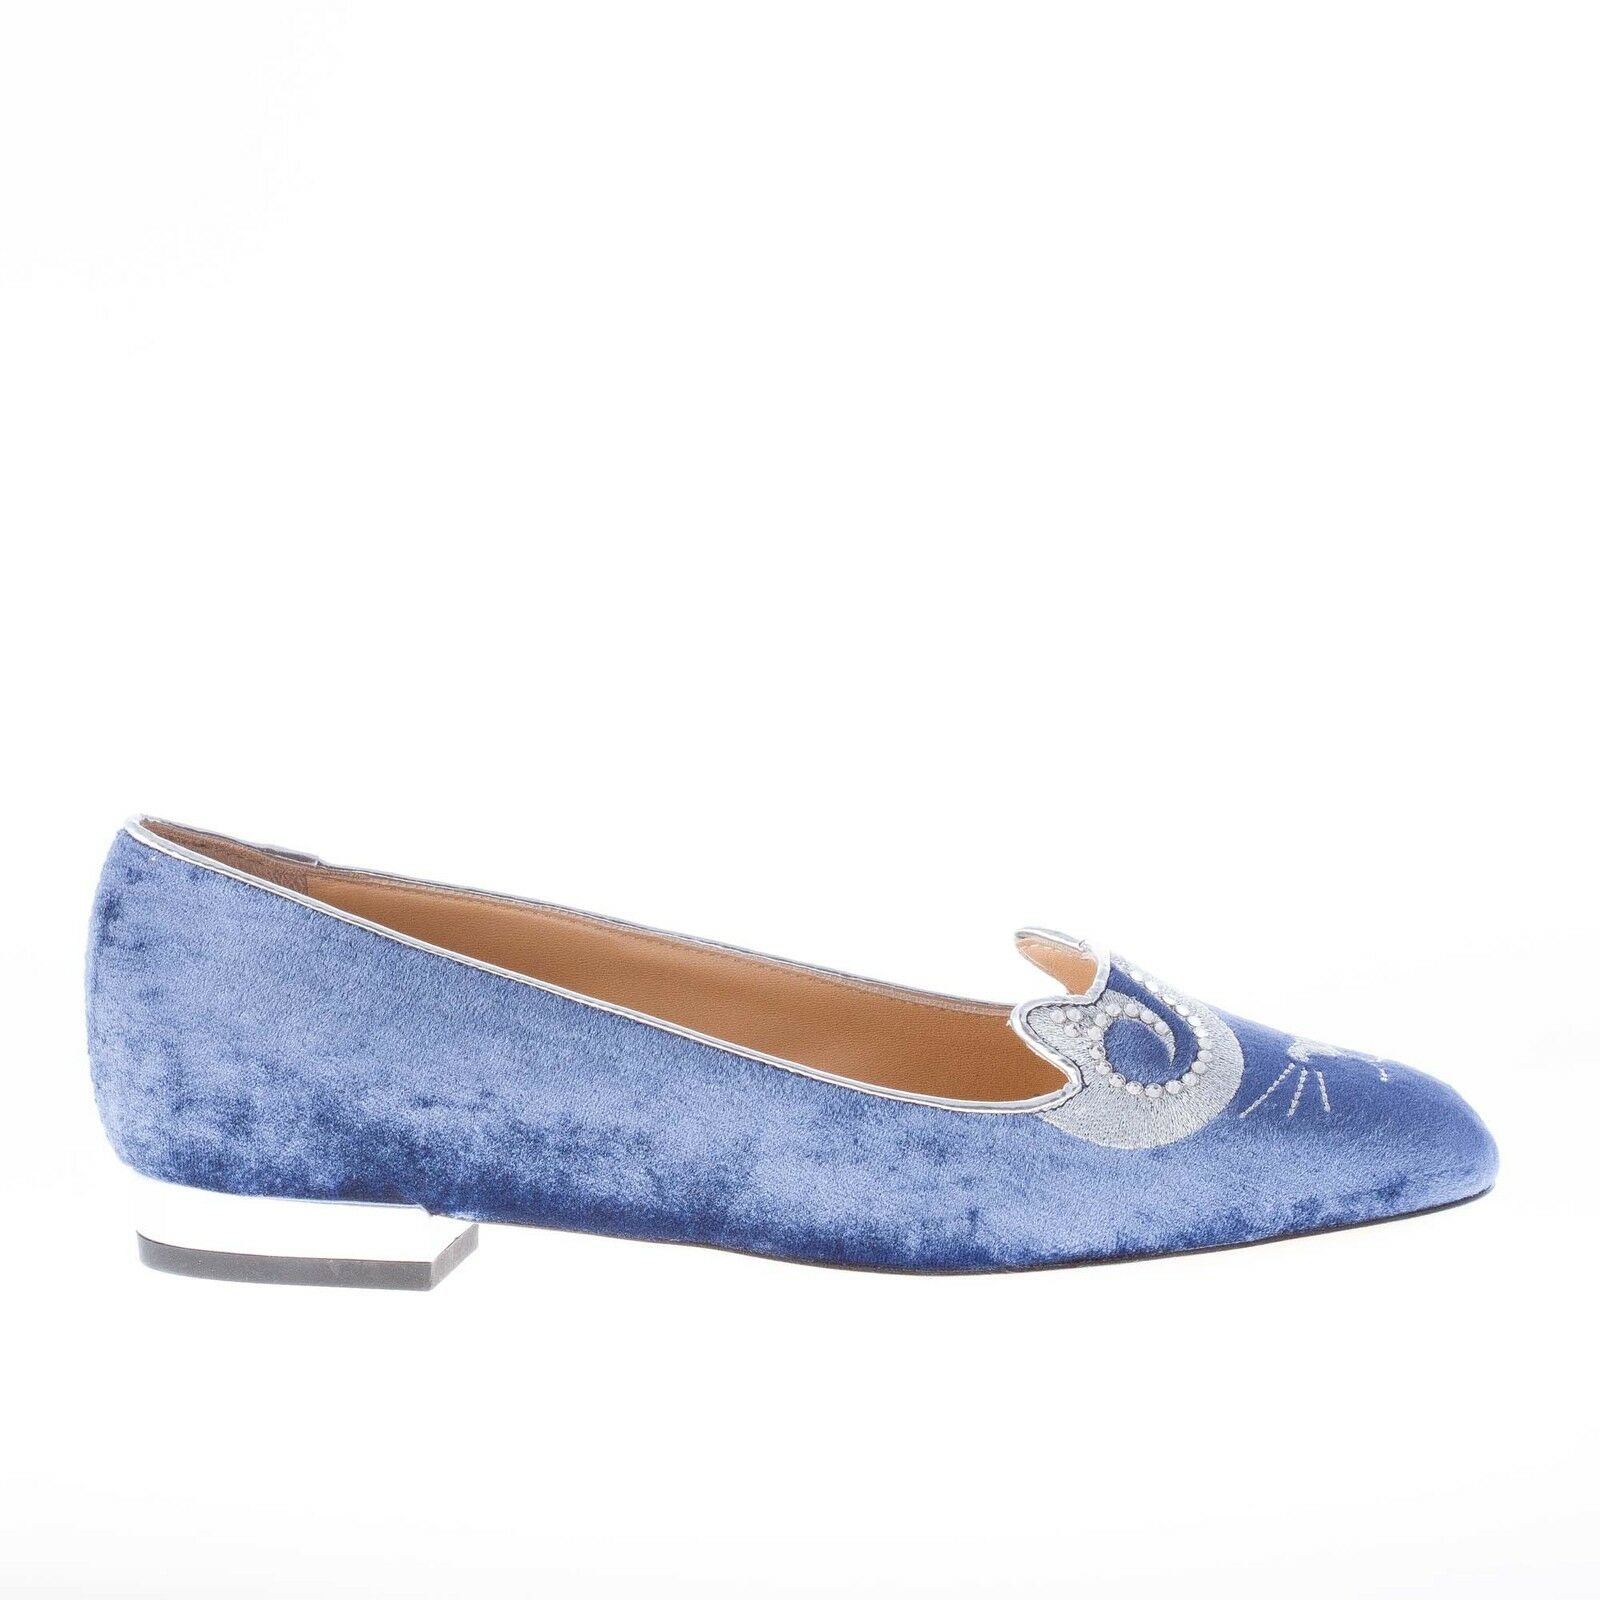 CHARLOTTE OLYMPIA women shoes King blau velvet slip on King shoes Kitty flat with crystals 8af5e9